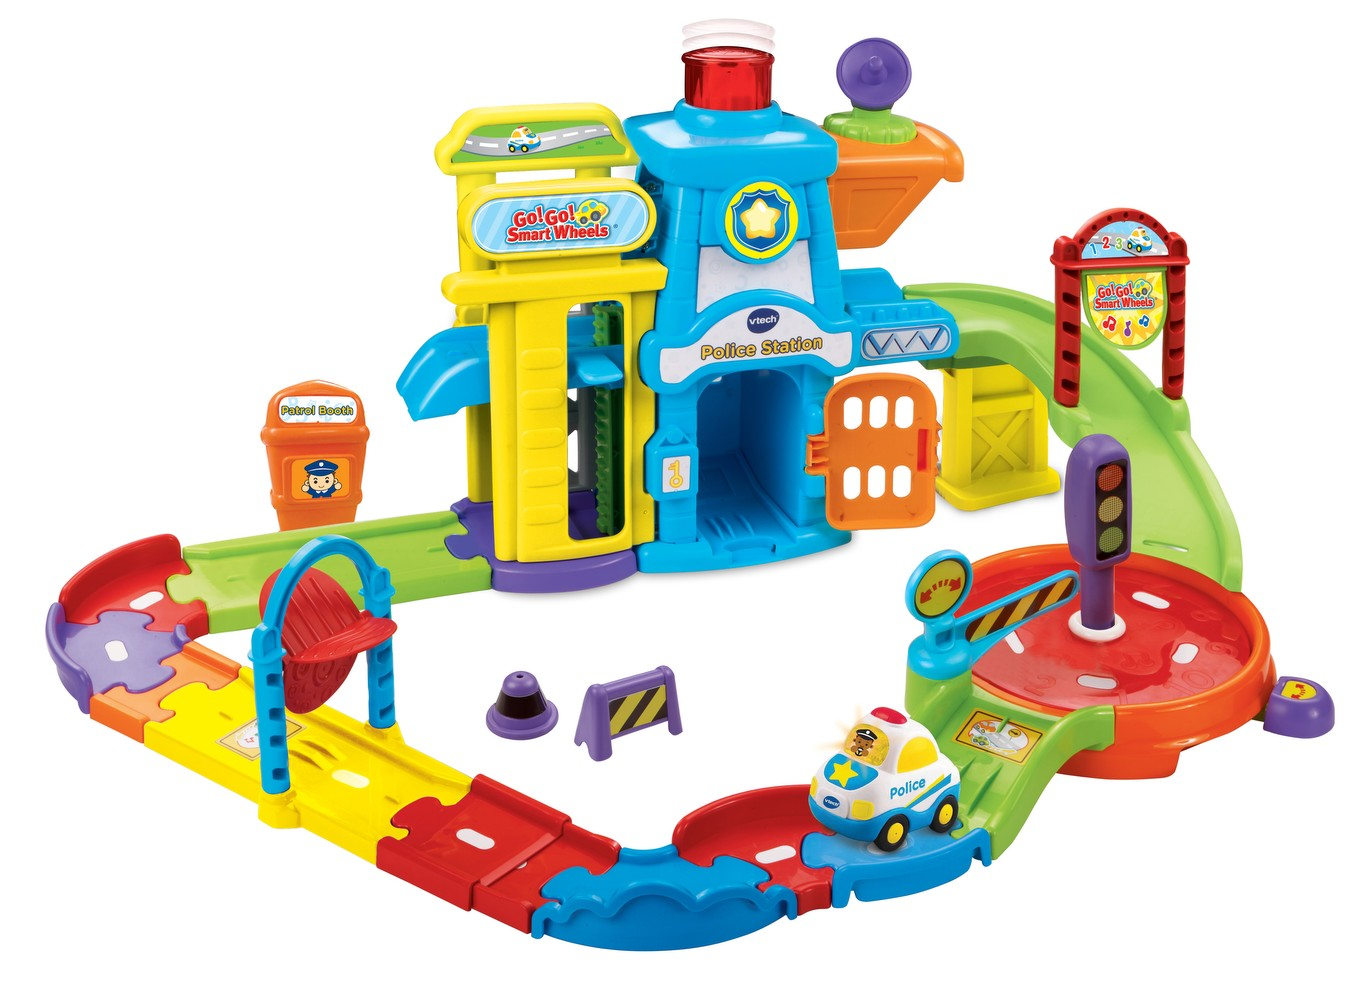 Musical Toys Age 7 : Go smart wheels │ police station playset vtech